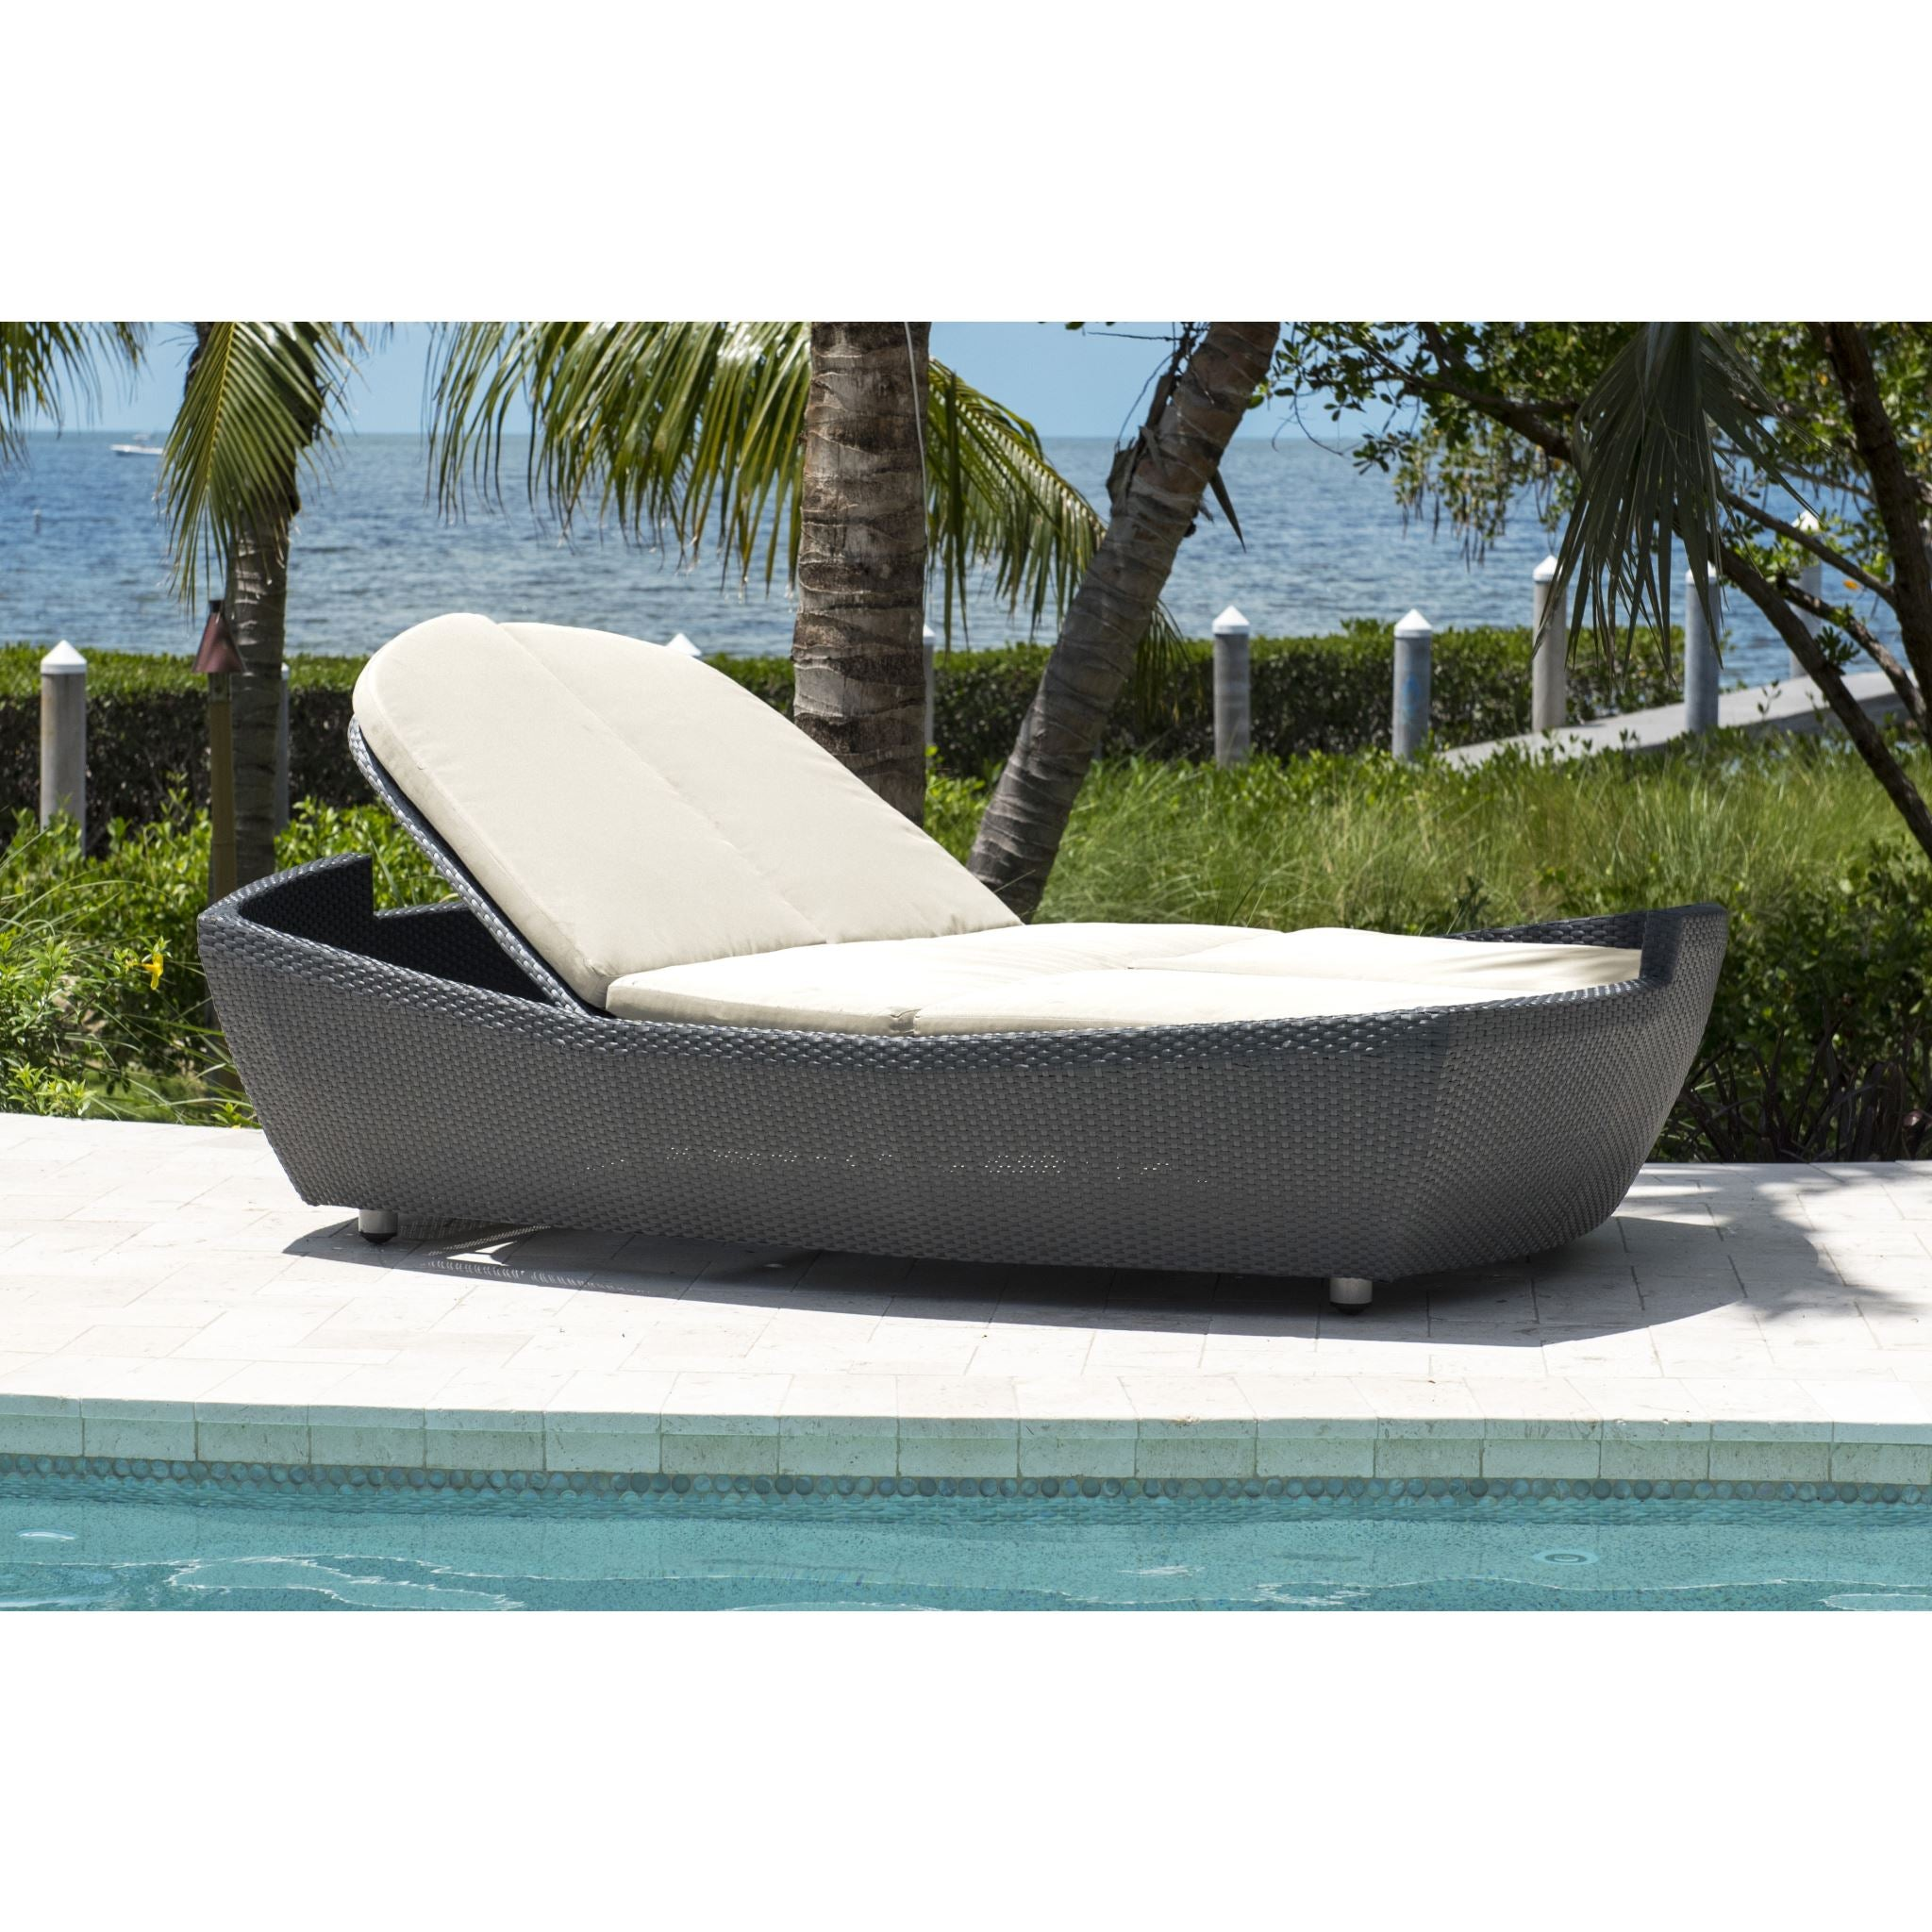 tulum folding smsender co walmart patio furniture lounges chaise